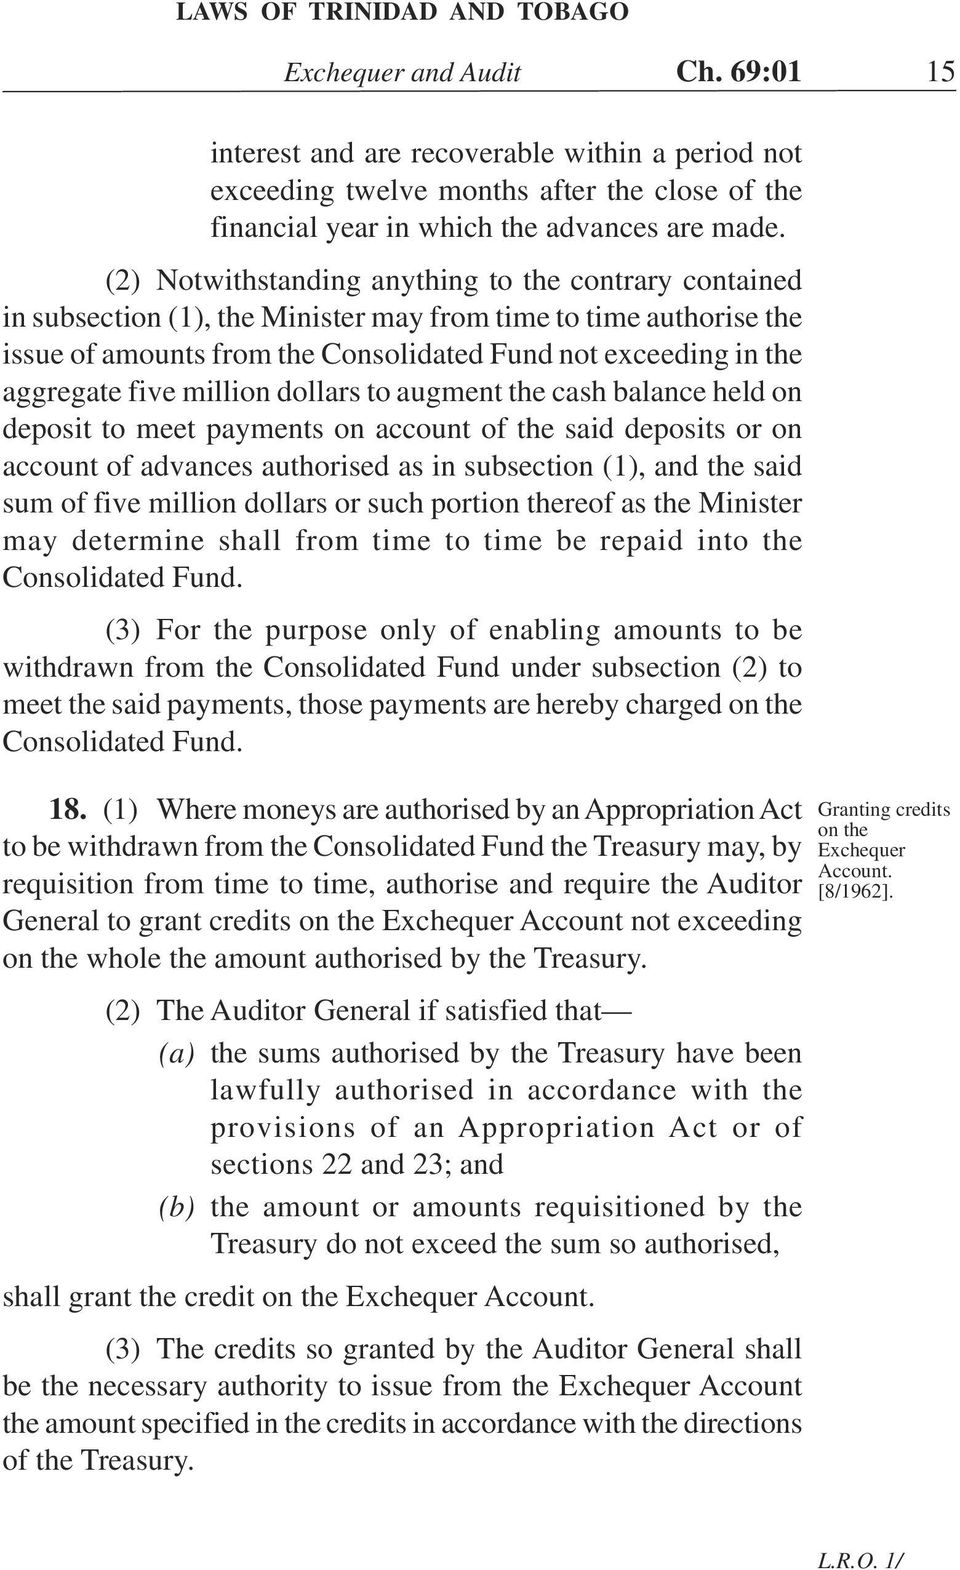 (2) Notwithstanding anything to the contrary contained in subsection (1), the Minister may from time to time authorise the issue of amounts from the Consolidated Fund not exceeding in the aggregate